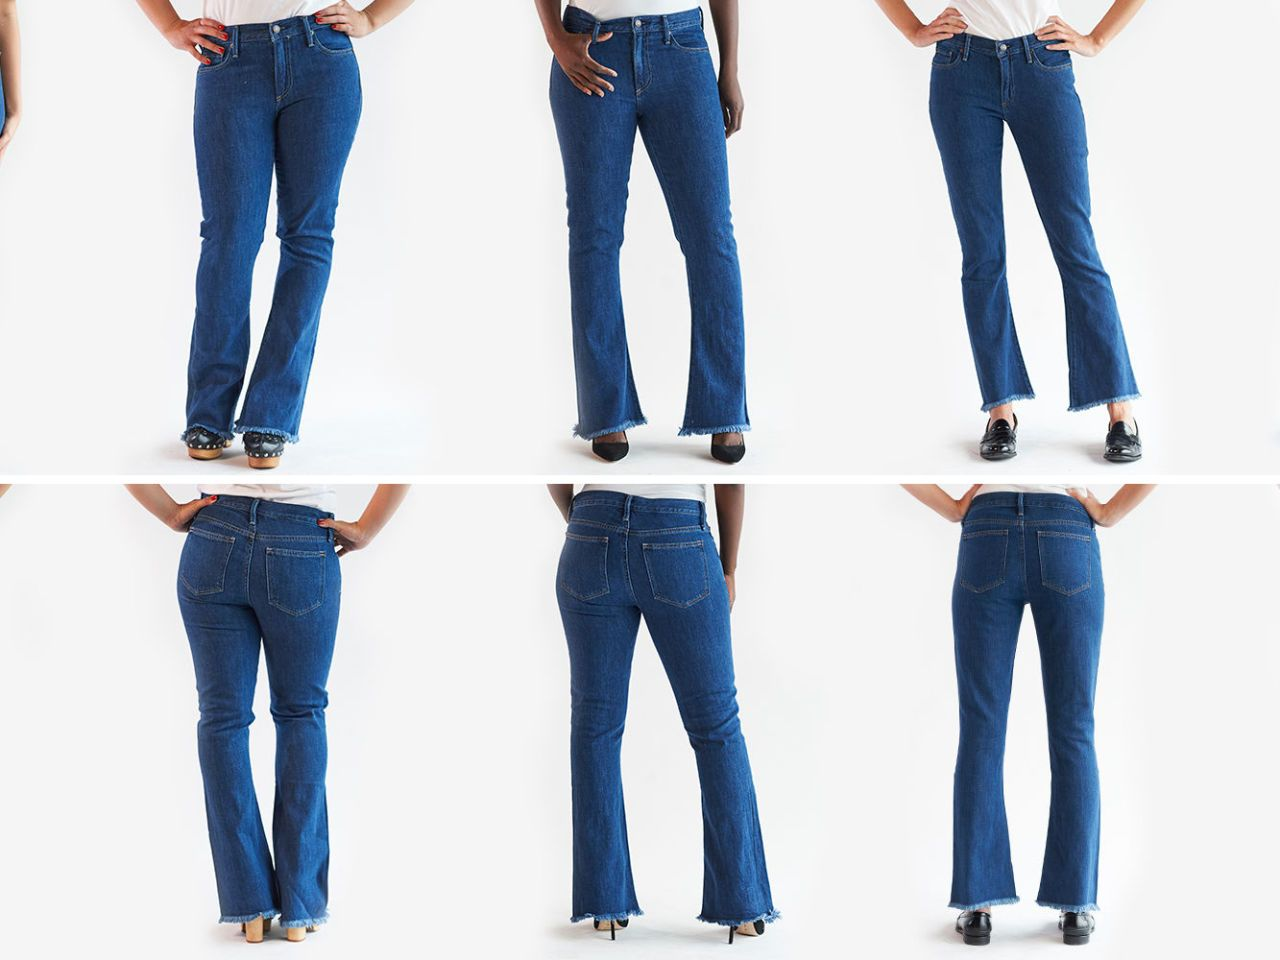 If you have very tight uncomfortable jeans where can you get comfortable jeans?